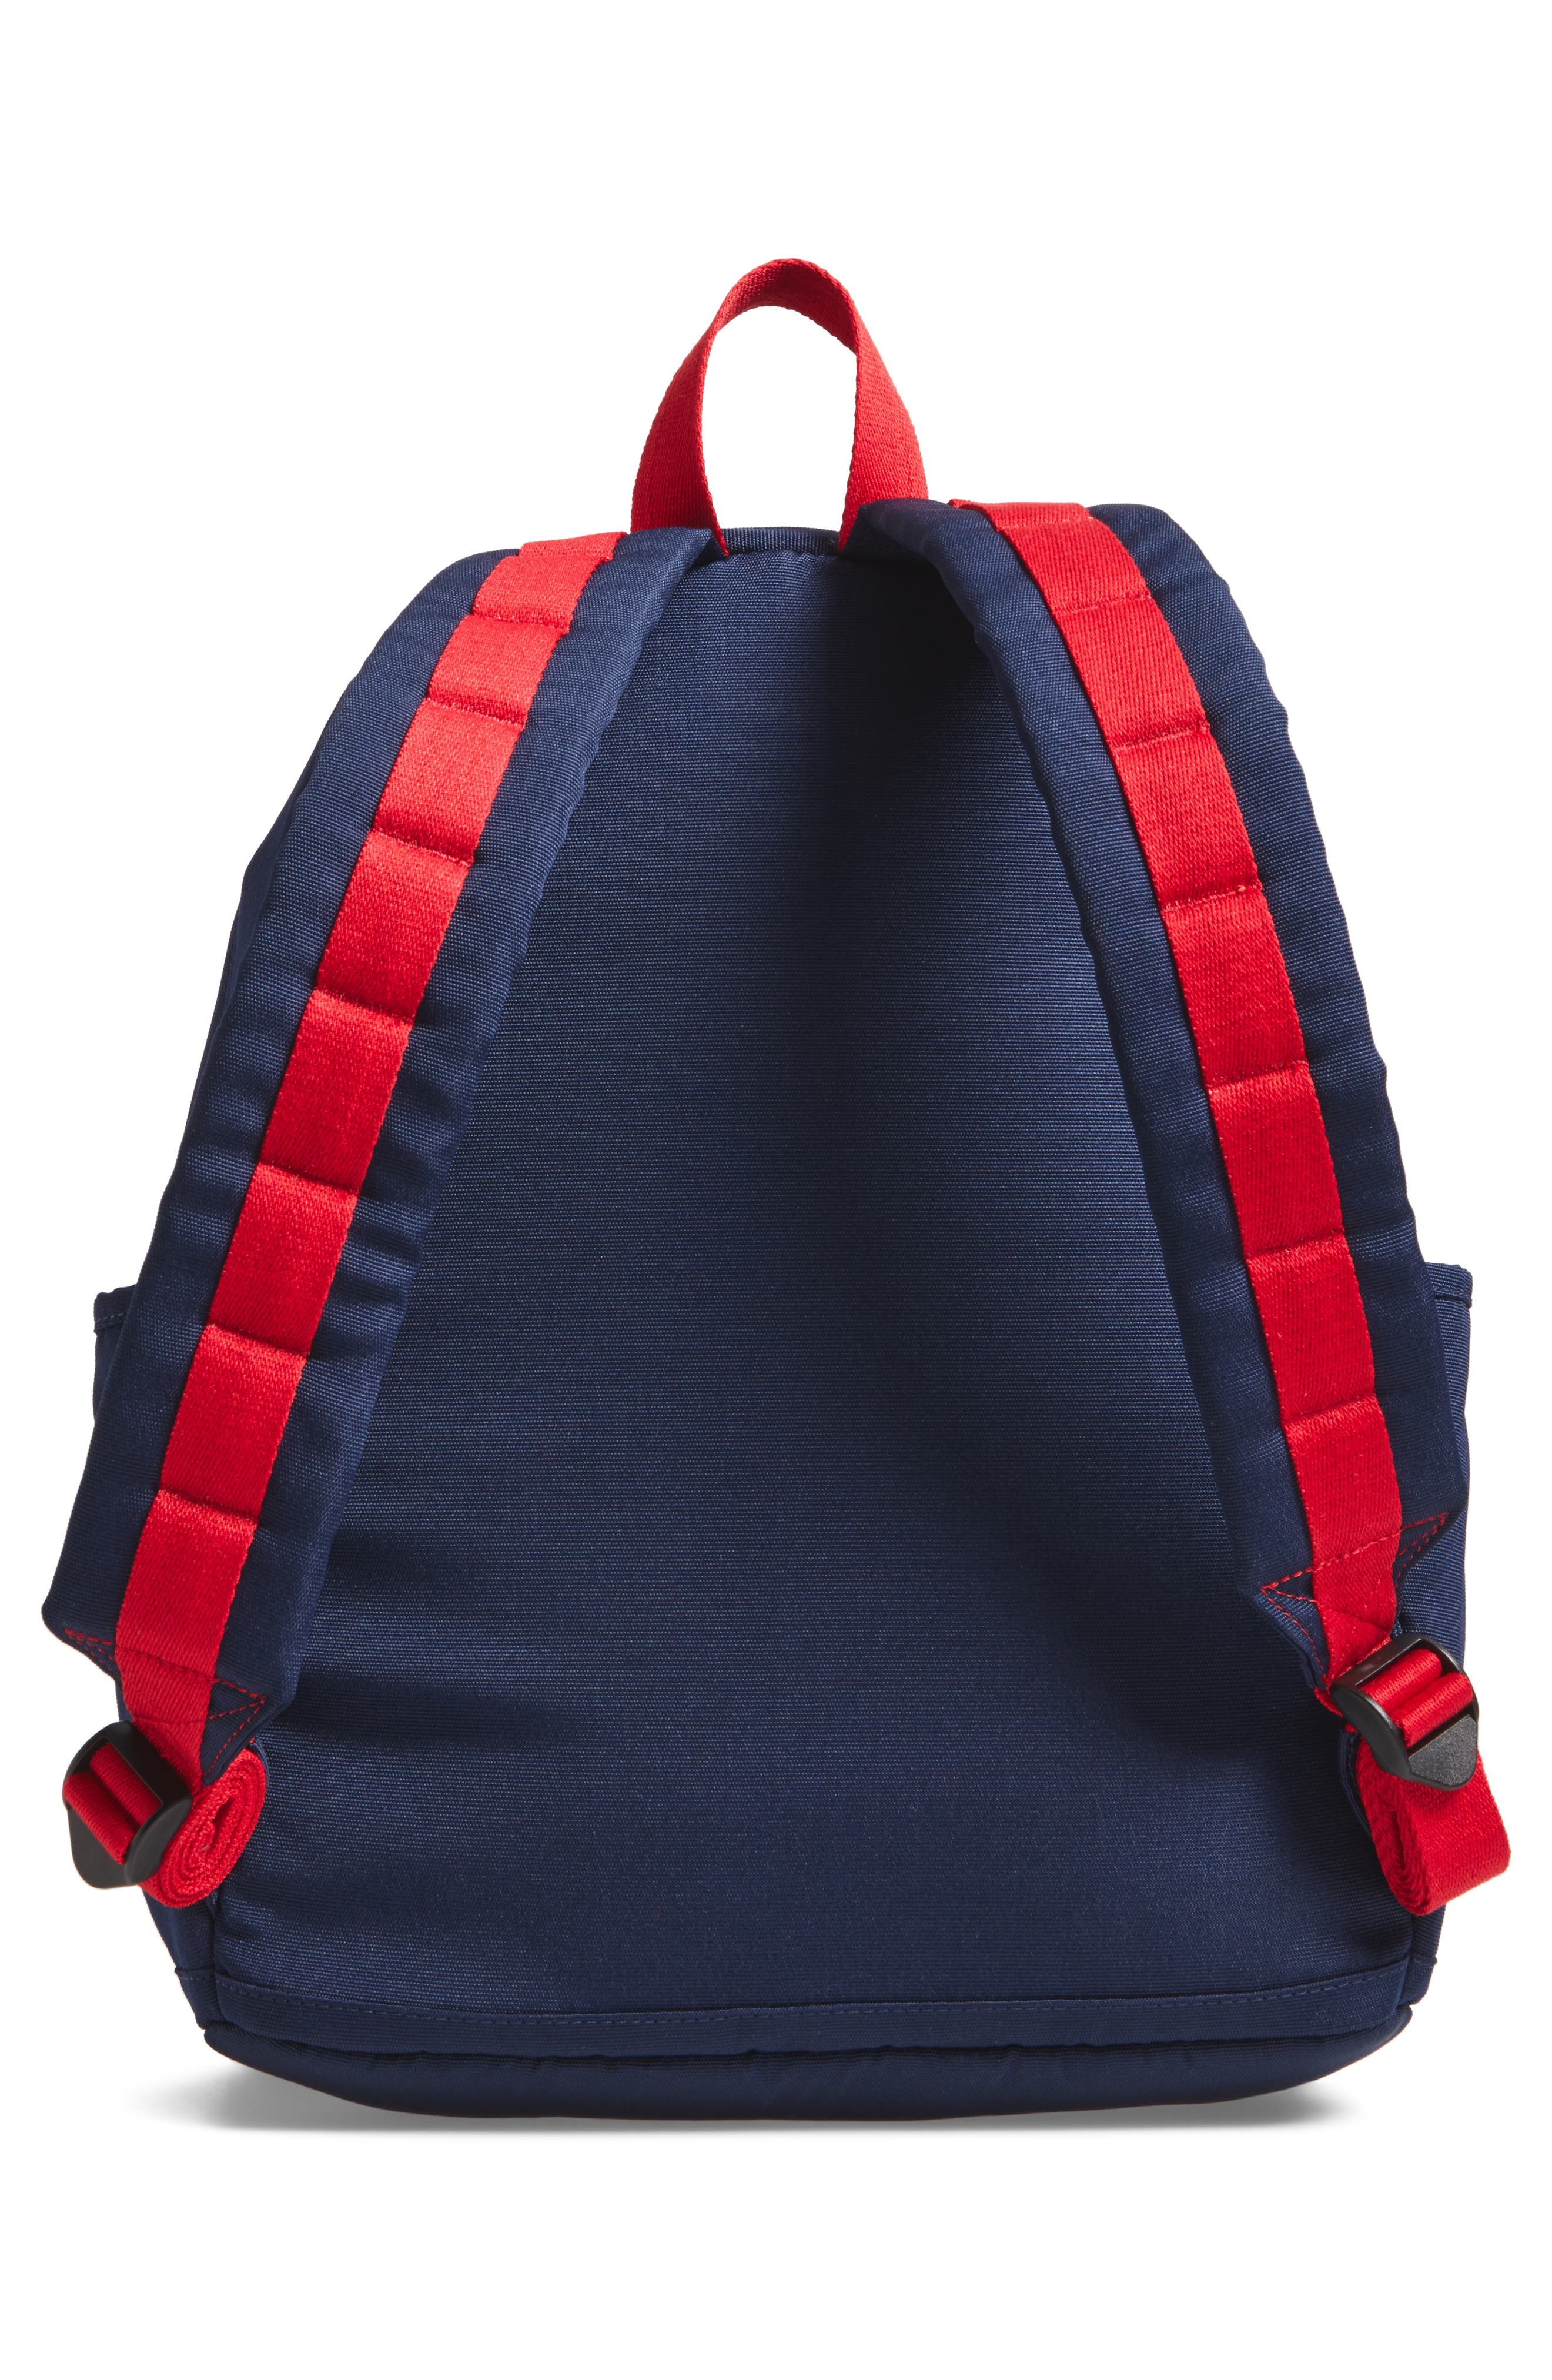 Williamsburg Bedford Backpack,                             Alternate thumbnail 3, color,                             Navy